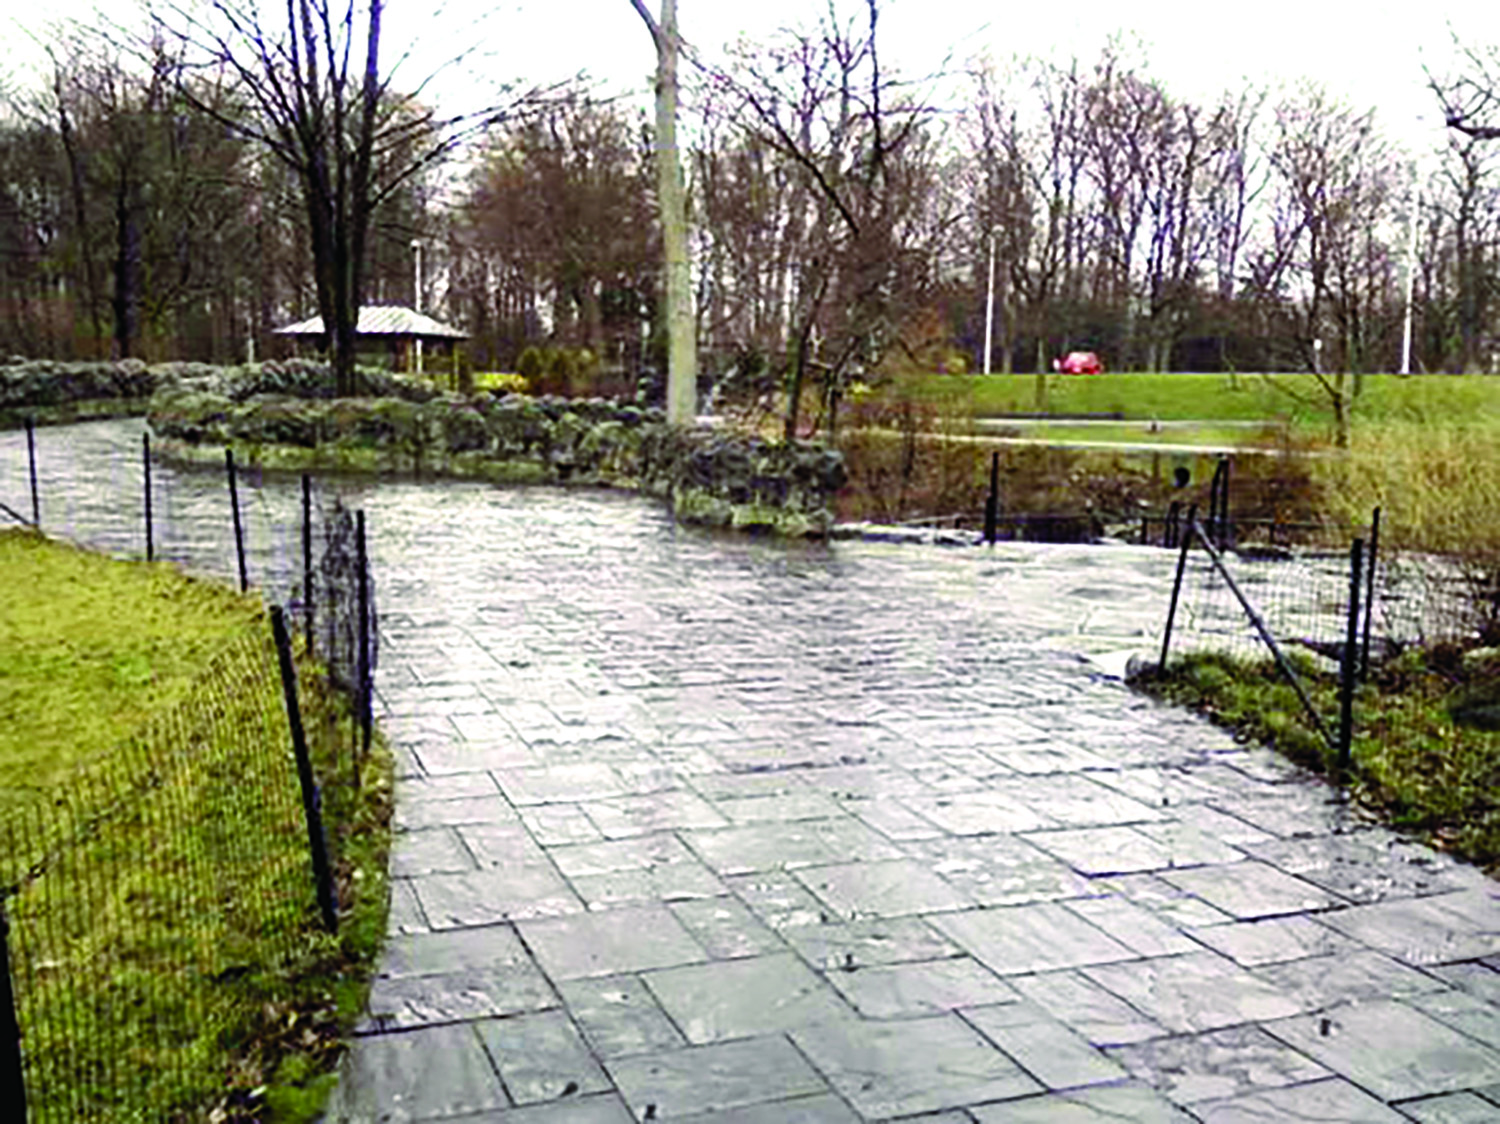 Fancy (and slippery) $60 per square foot granite pavers helped an Albany based contractor earn millions as part of the Niagara Falls State Park improvement plan.